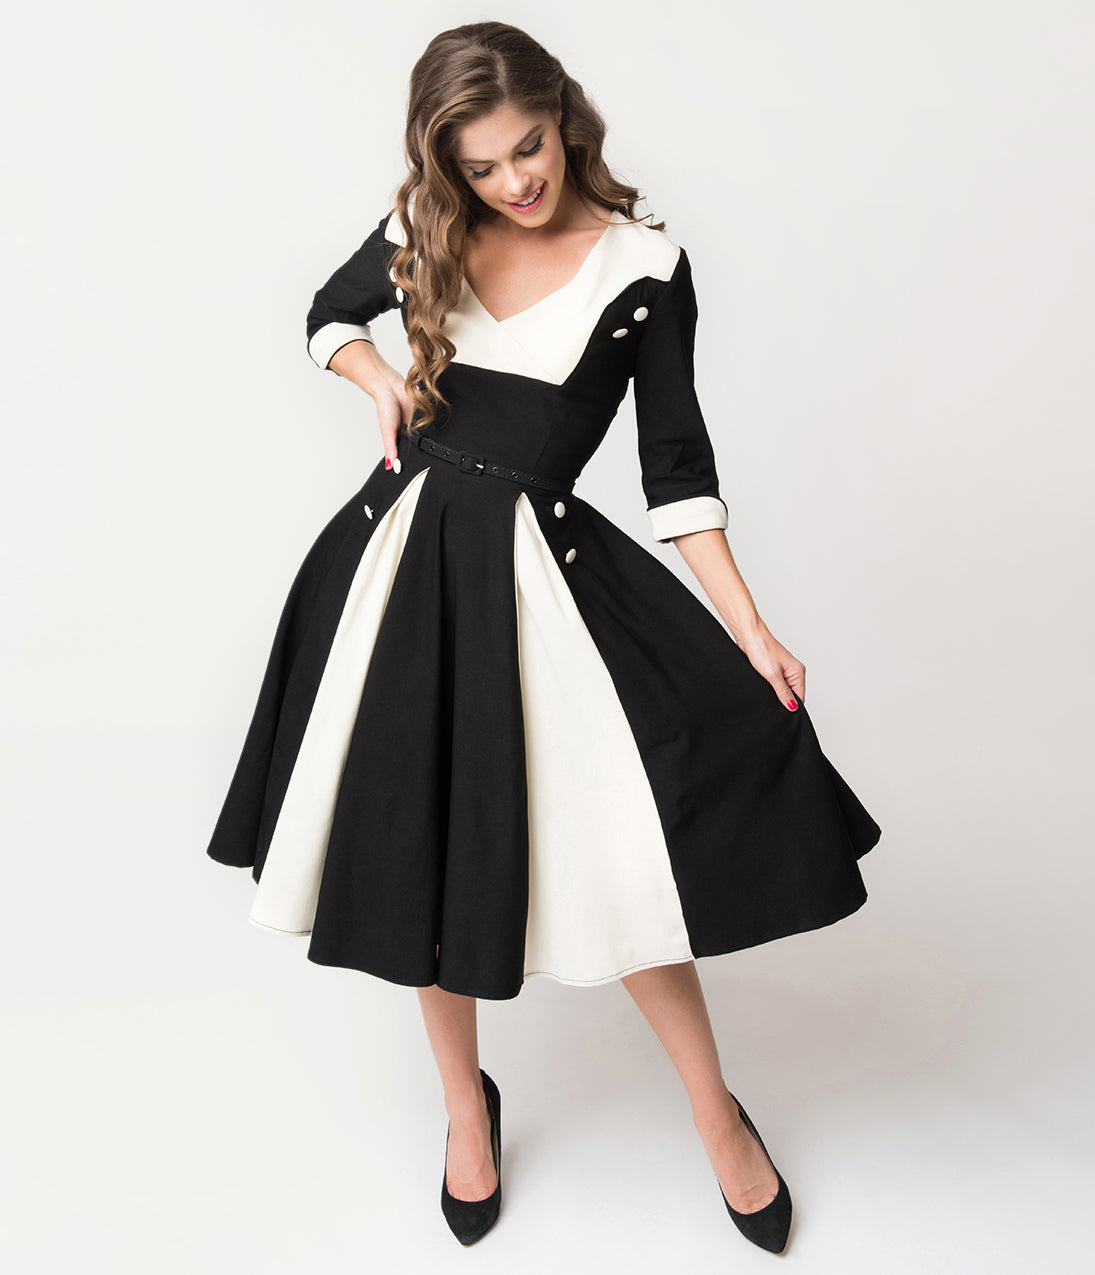 1950s Swing Dresses | 50s Swing Dress Unique Vintage Retro Style Black  Ivory Sleeved Lydia Swing Dress $74.00 AT vintagedancer.com